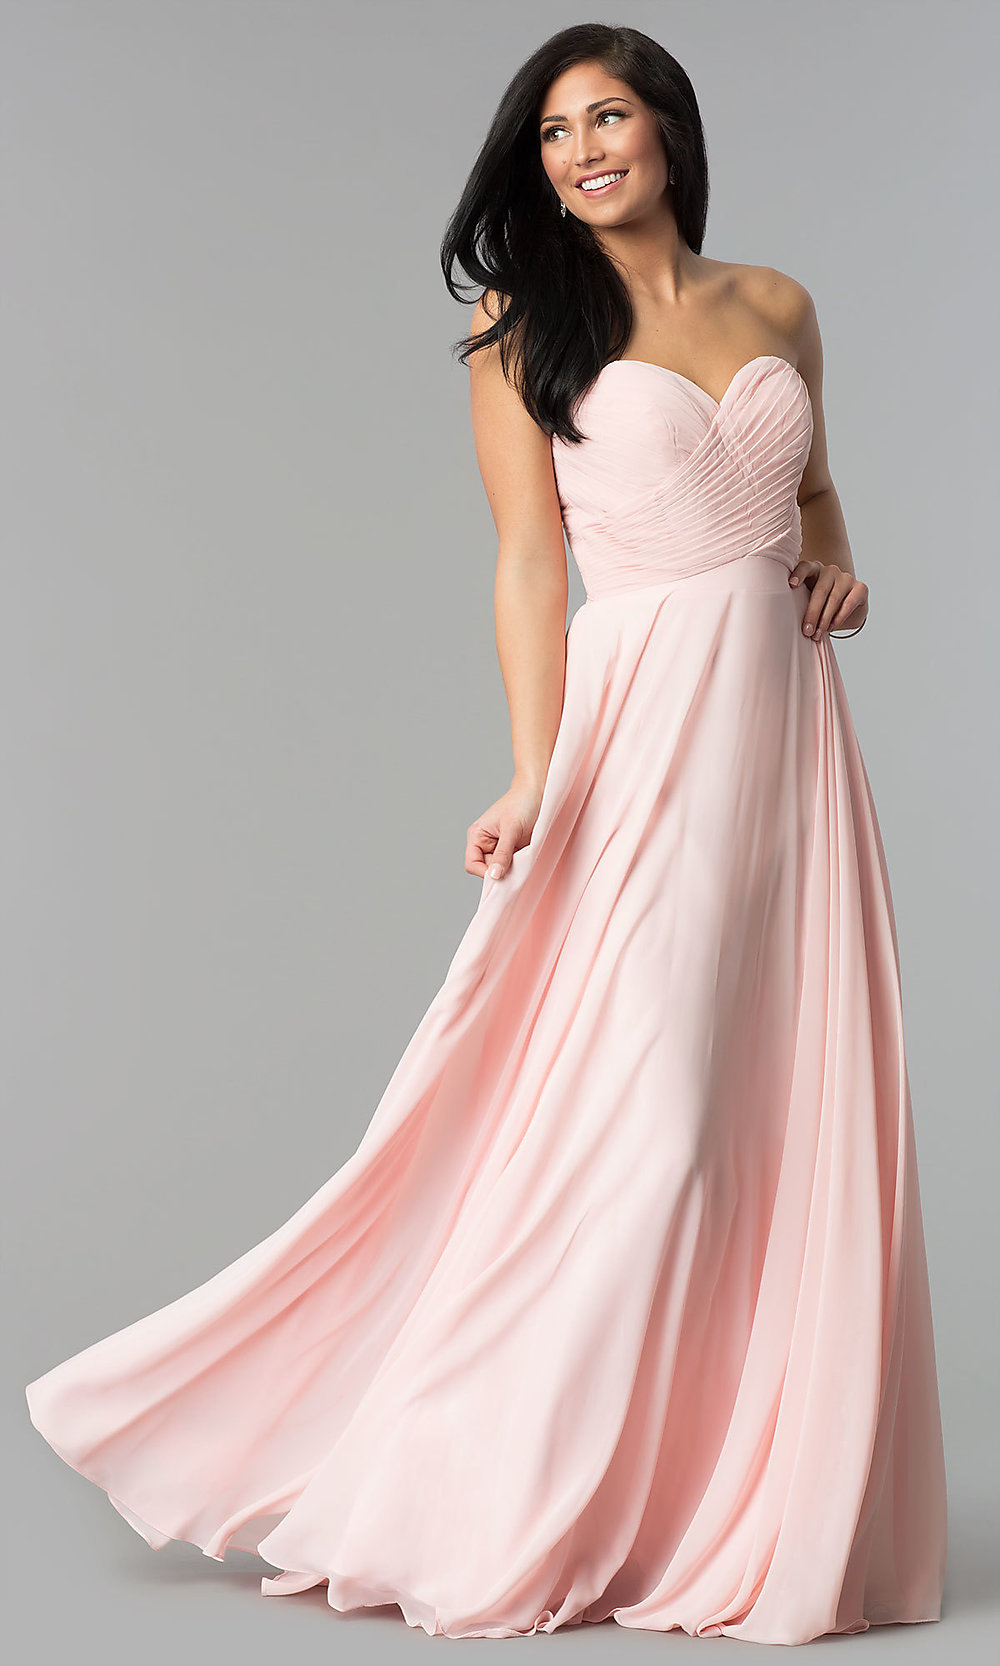 Strapless Floor-Length Prom Dress with Corset Back